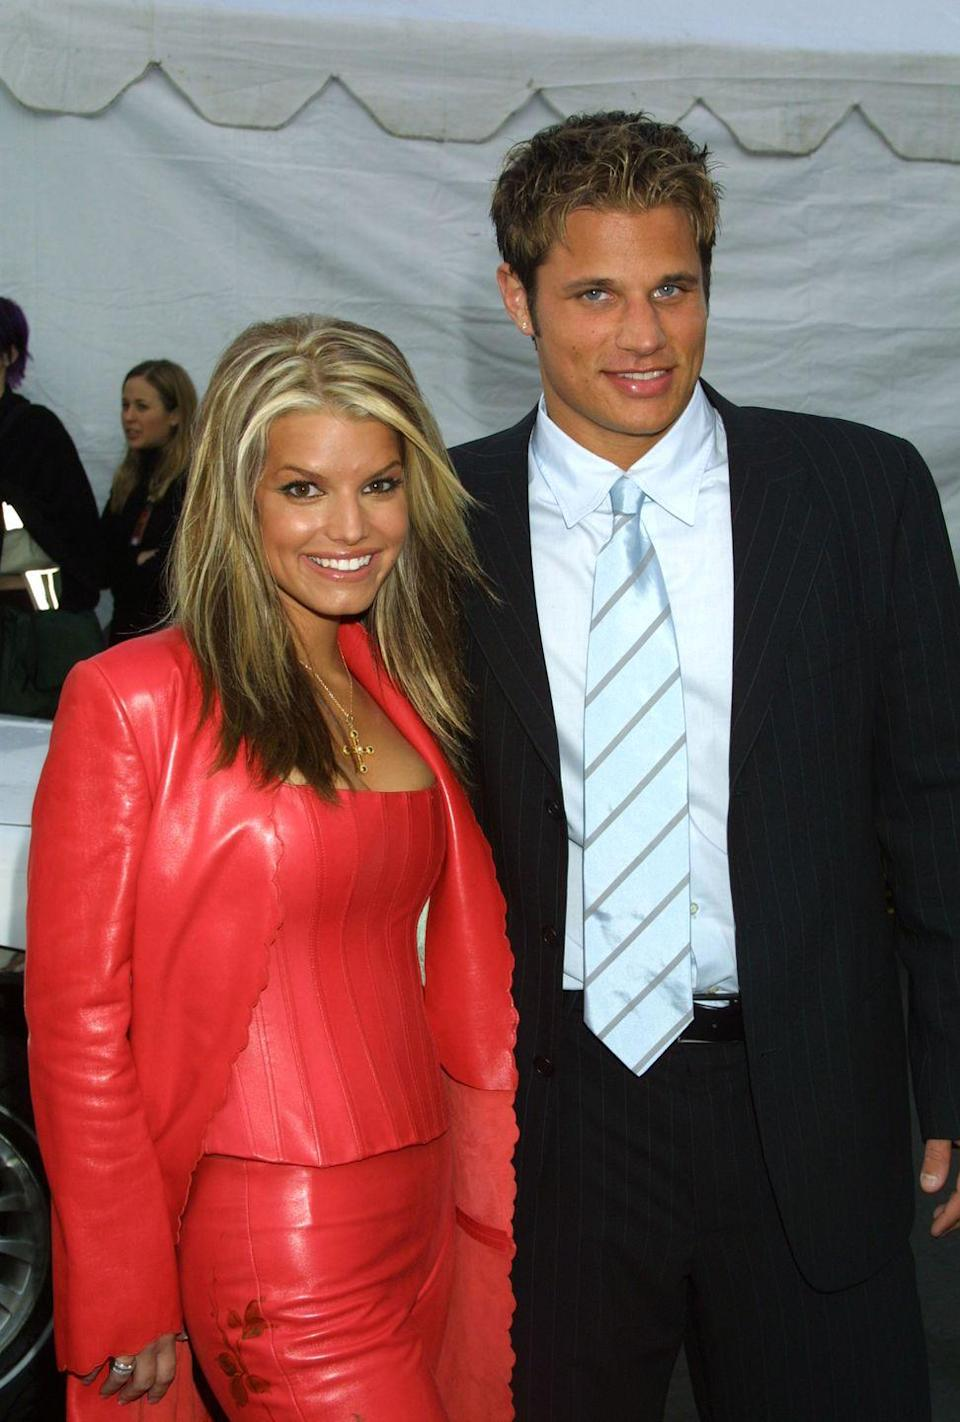 <p>The <em>Newlyweds</em> stars gave us pure early-aughts gold with Nick's frosted tips and Jessica's *entire* red leather ensemble as the pair walked the carpet at the 28th Annual American Music Awards.</p>